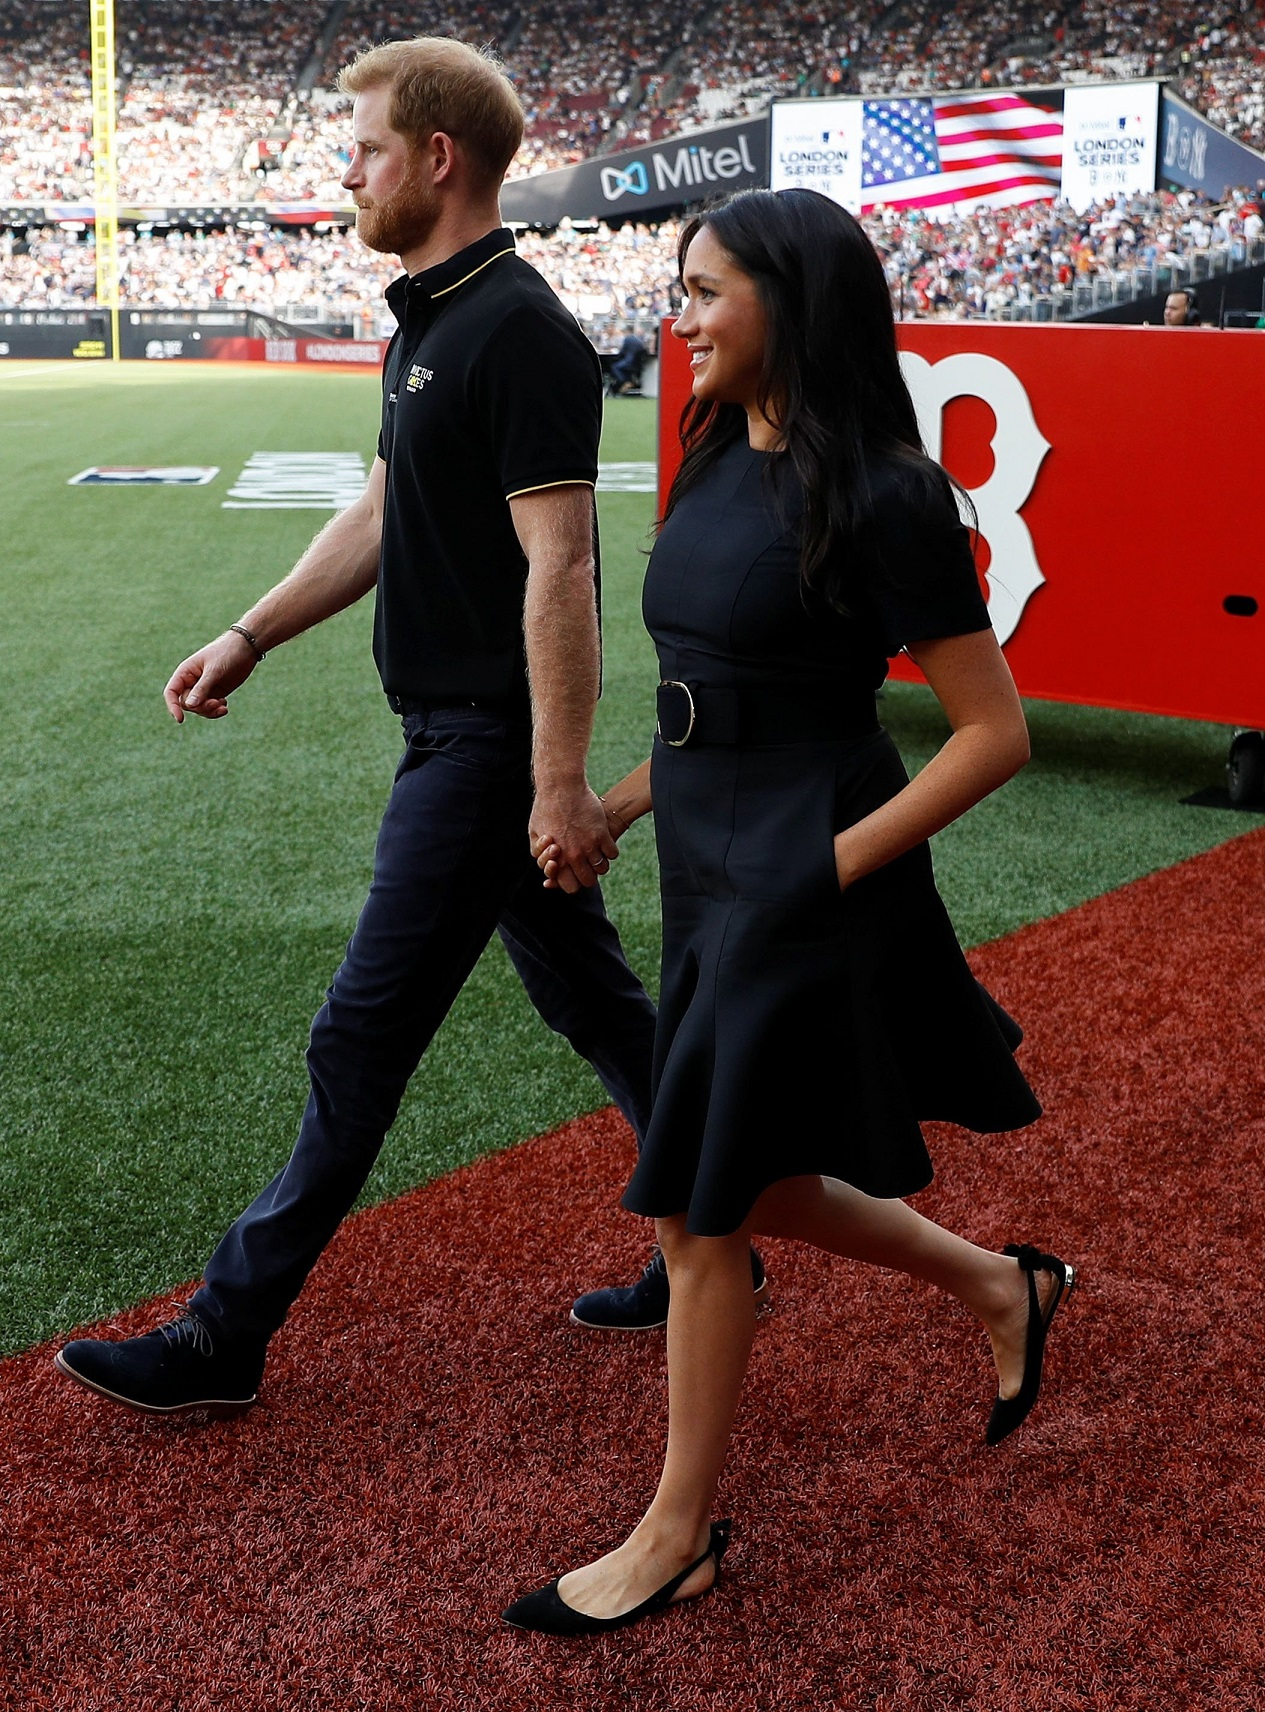 Duke and Duchess of Sussex at London baseball game